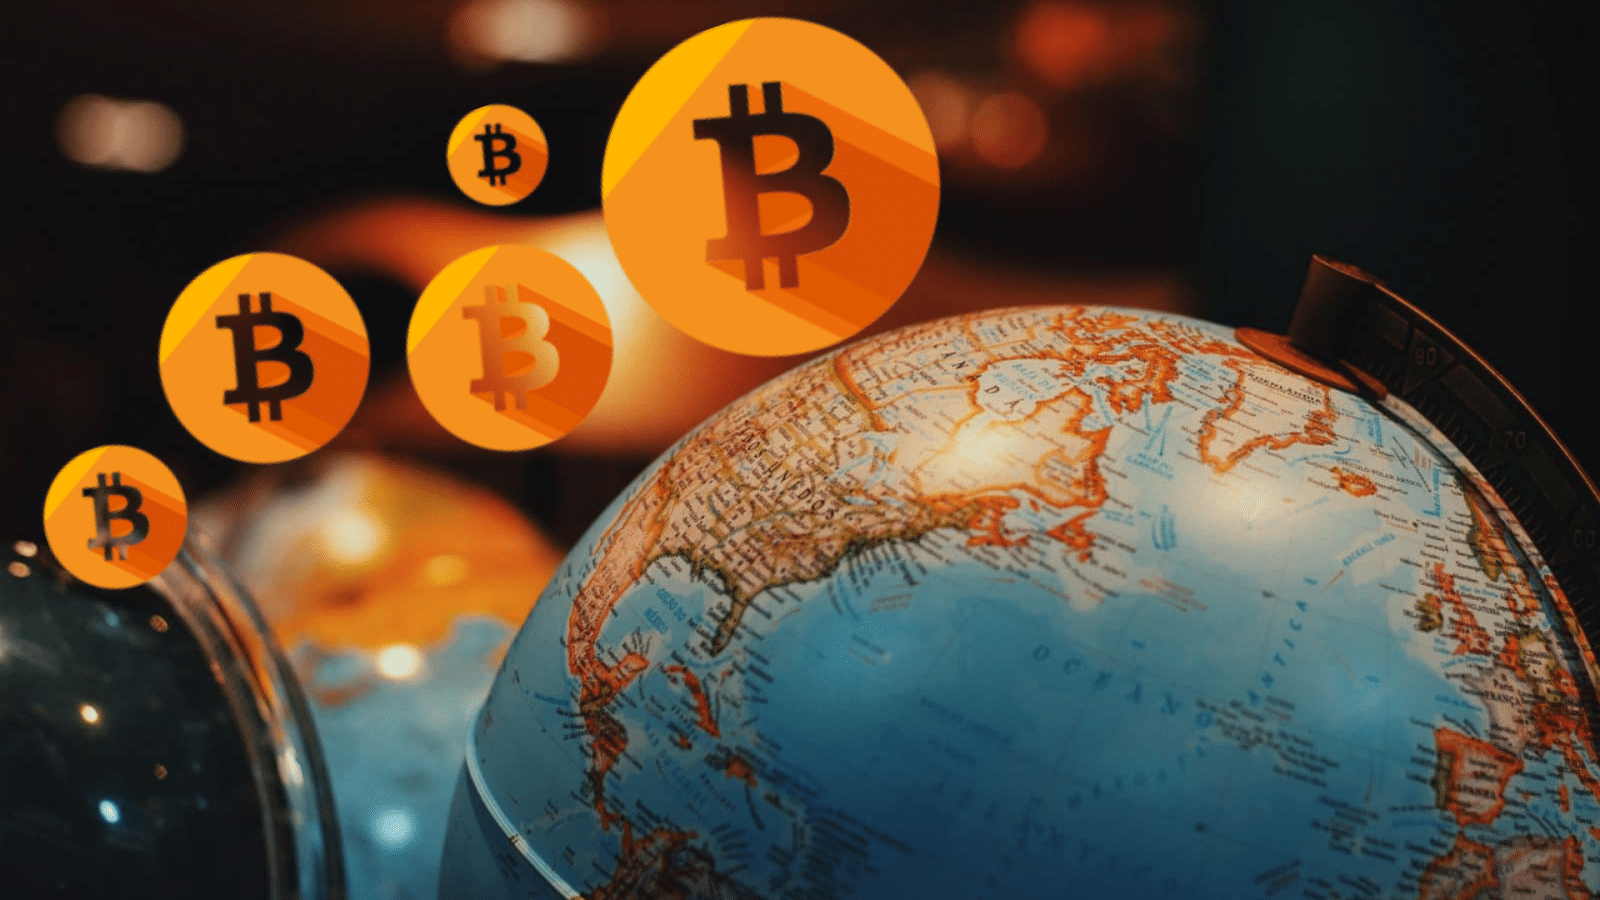 Blockchain Venture Capitalist: Bitcoin Could Be The World's Most Compelling Asset